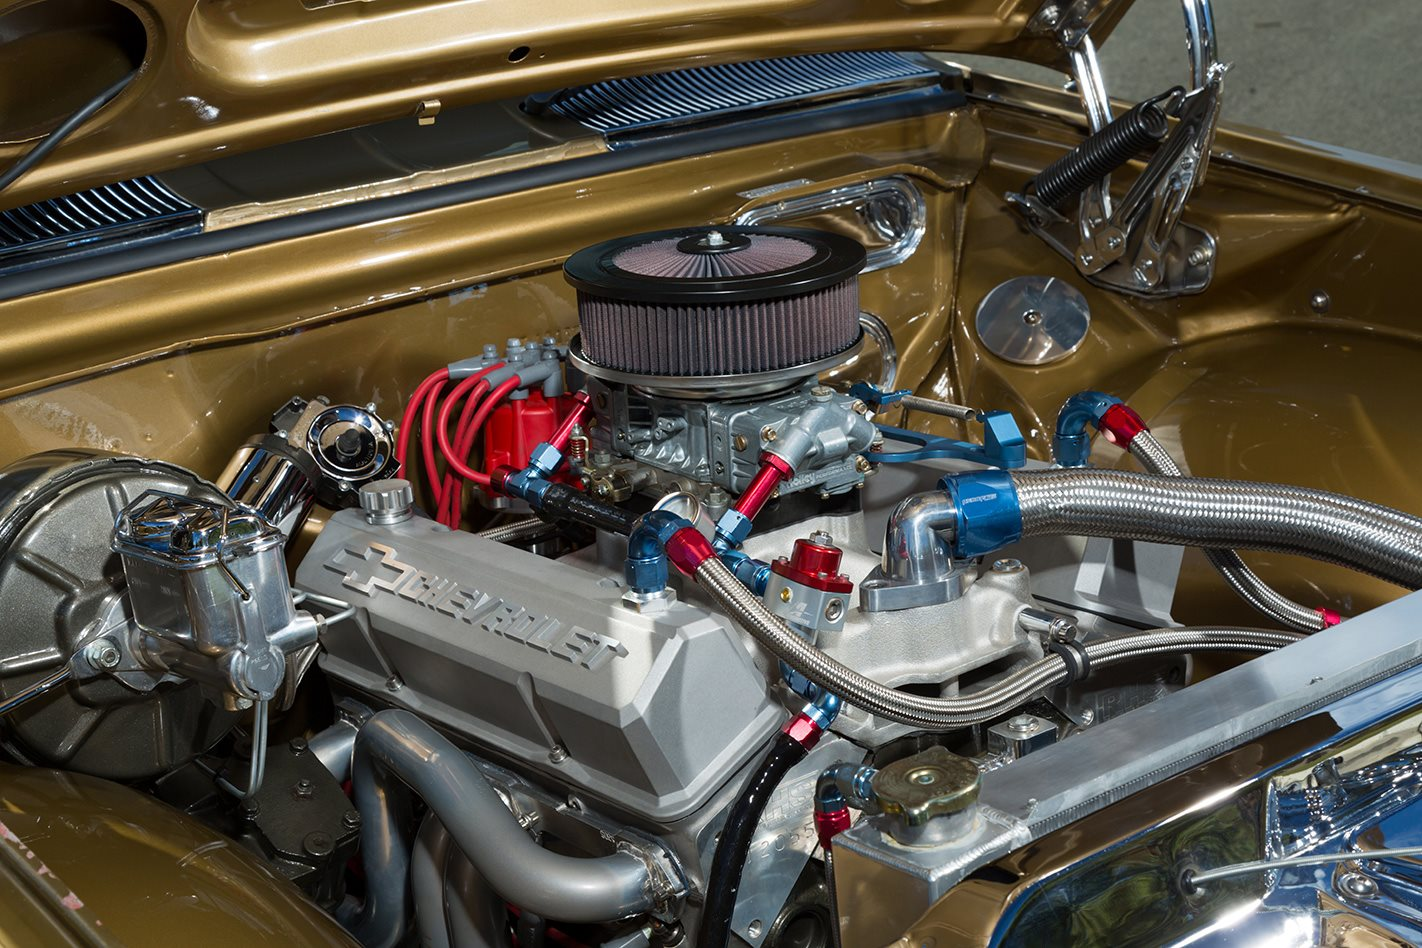 1969 HT HOLDEN PREMIER engine